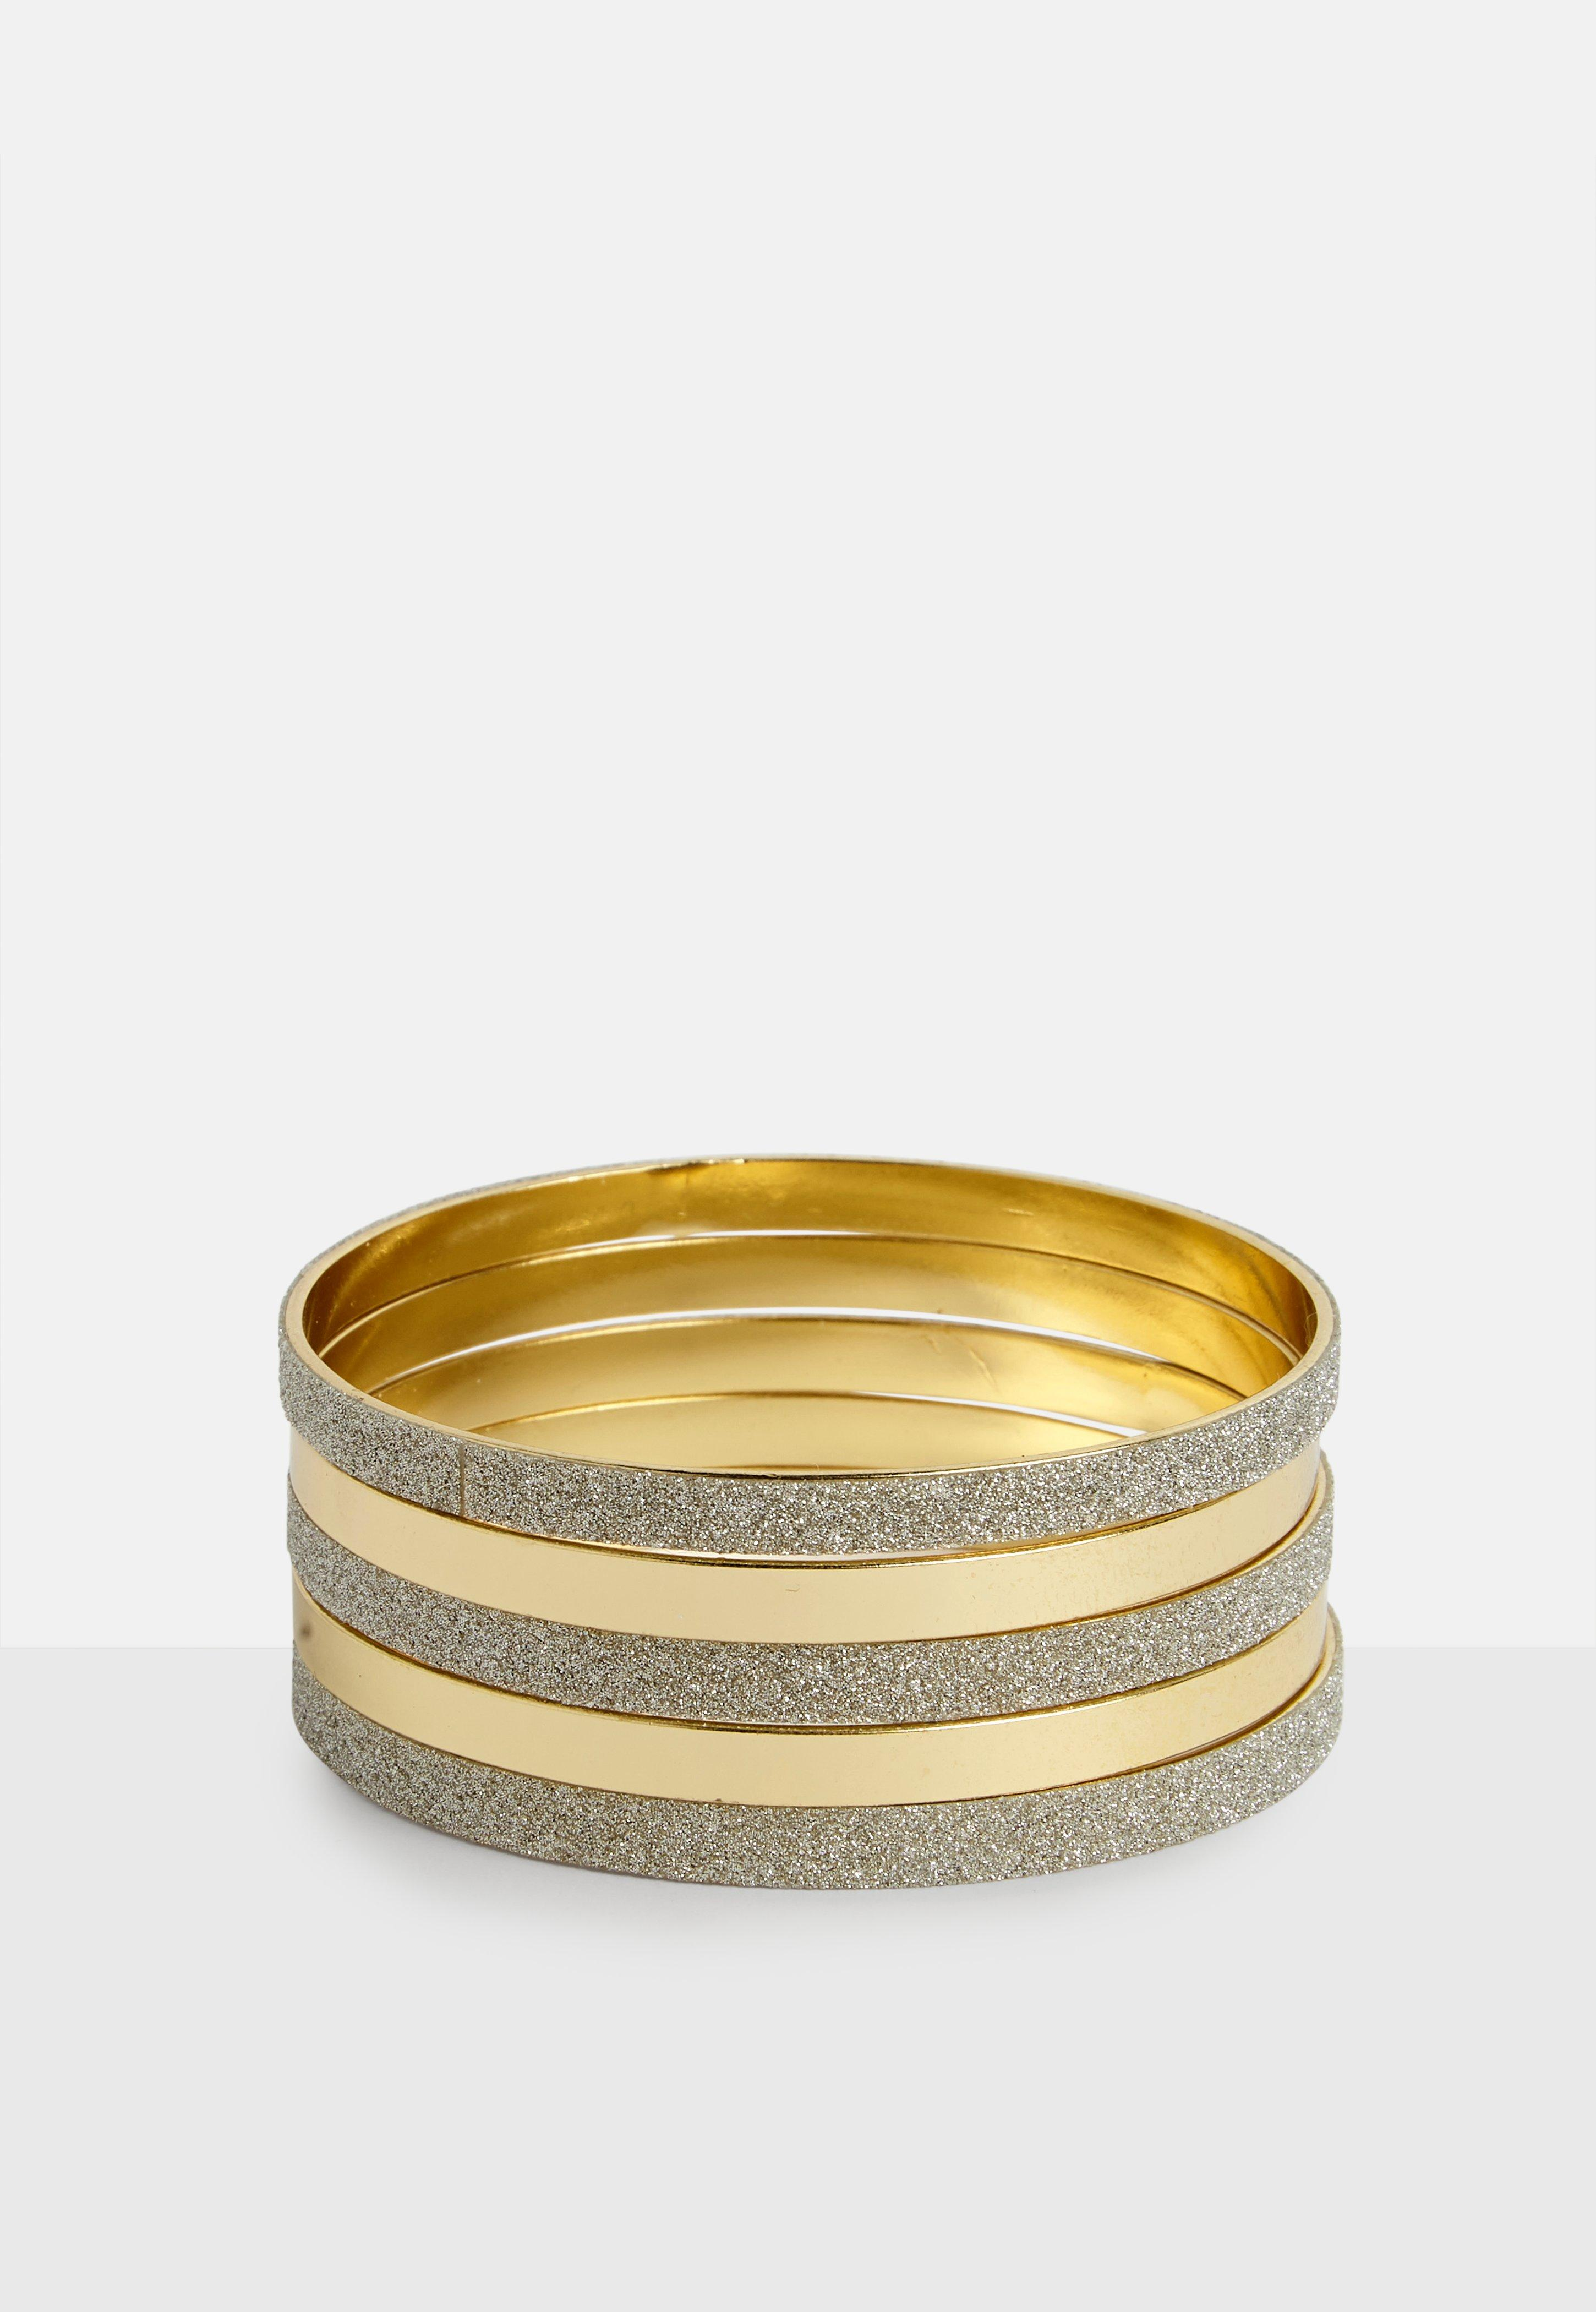 b every womens jewelry woman polla pieces precious have should ada of huffpost bangles